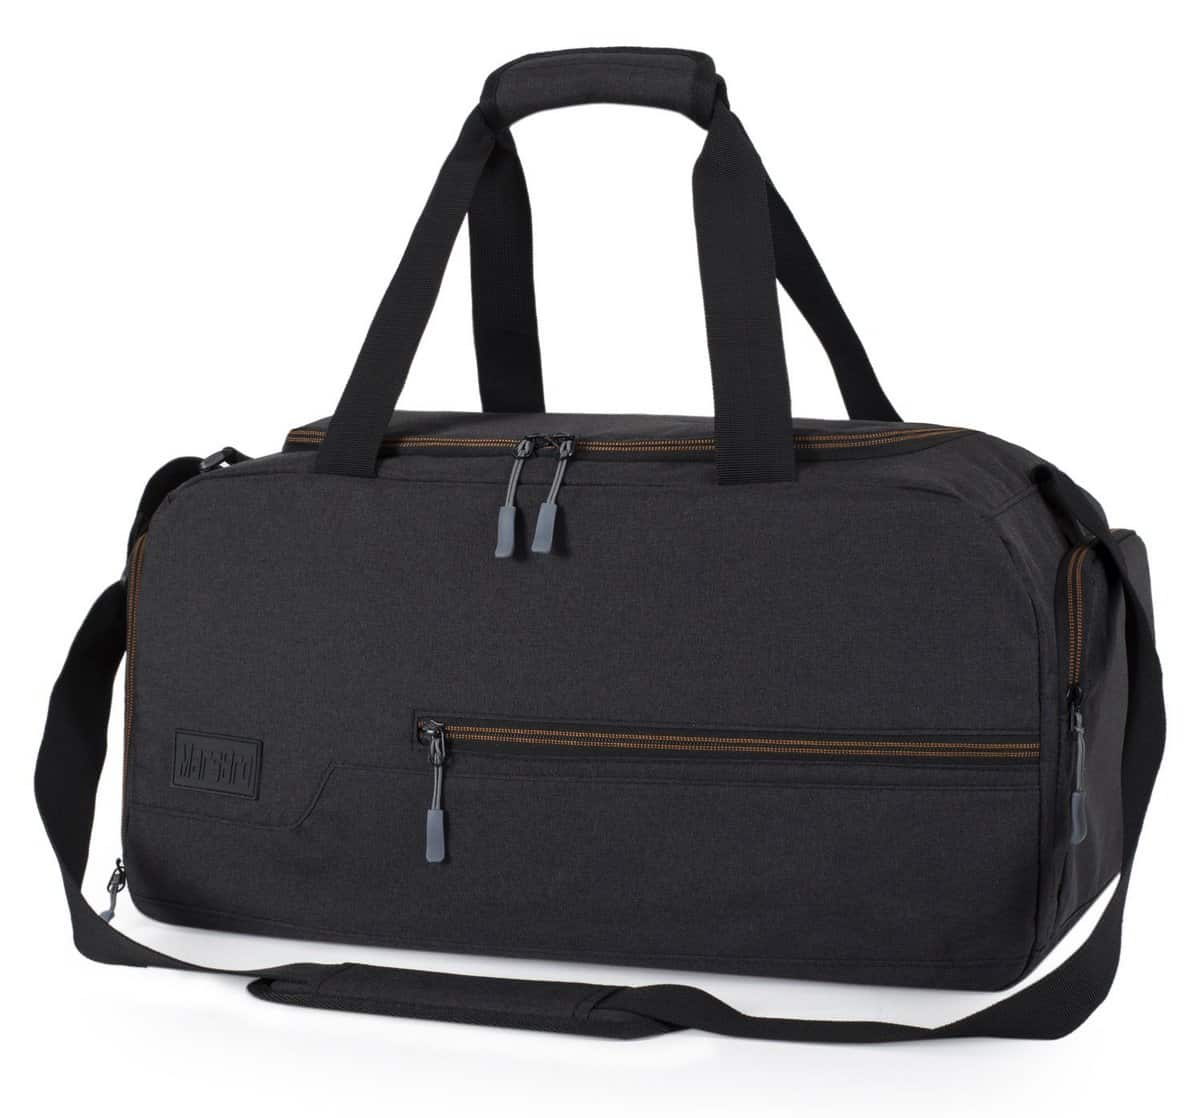 Marsbro Sports Duffel Bag